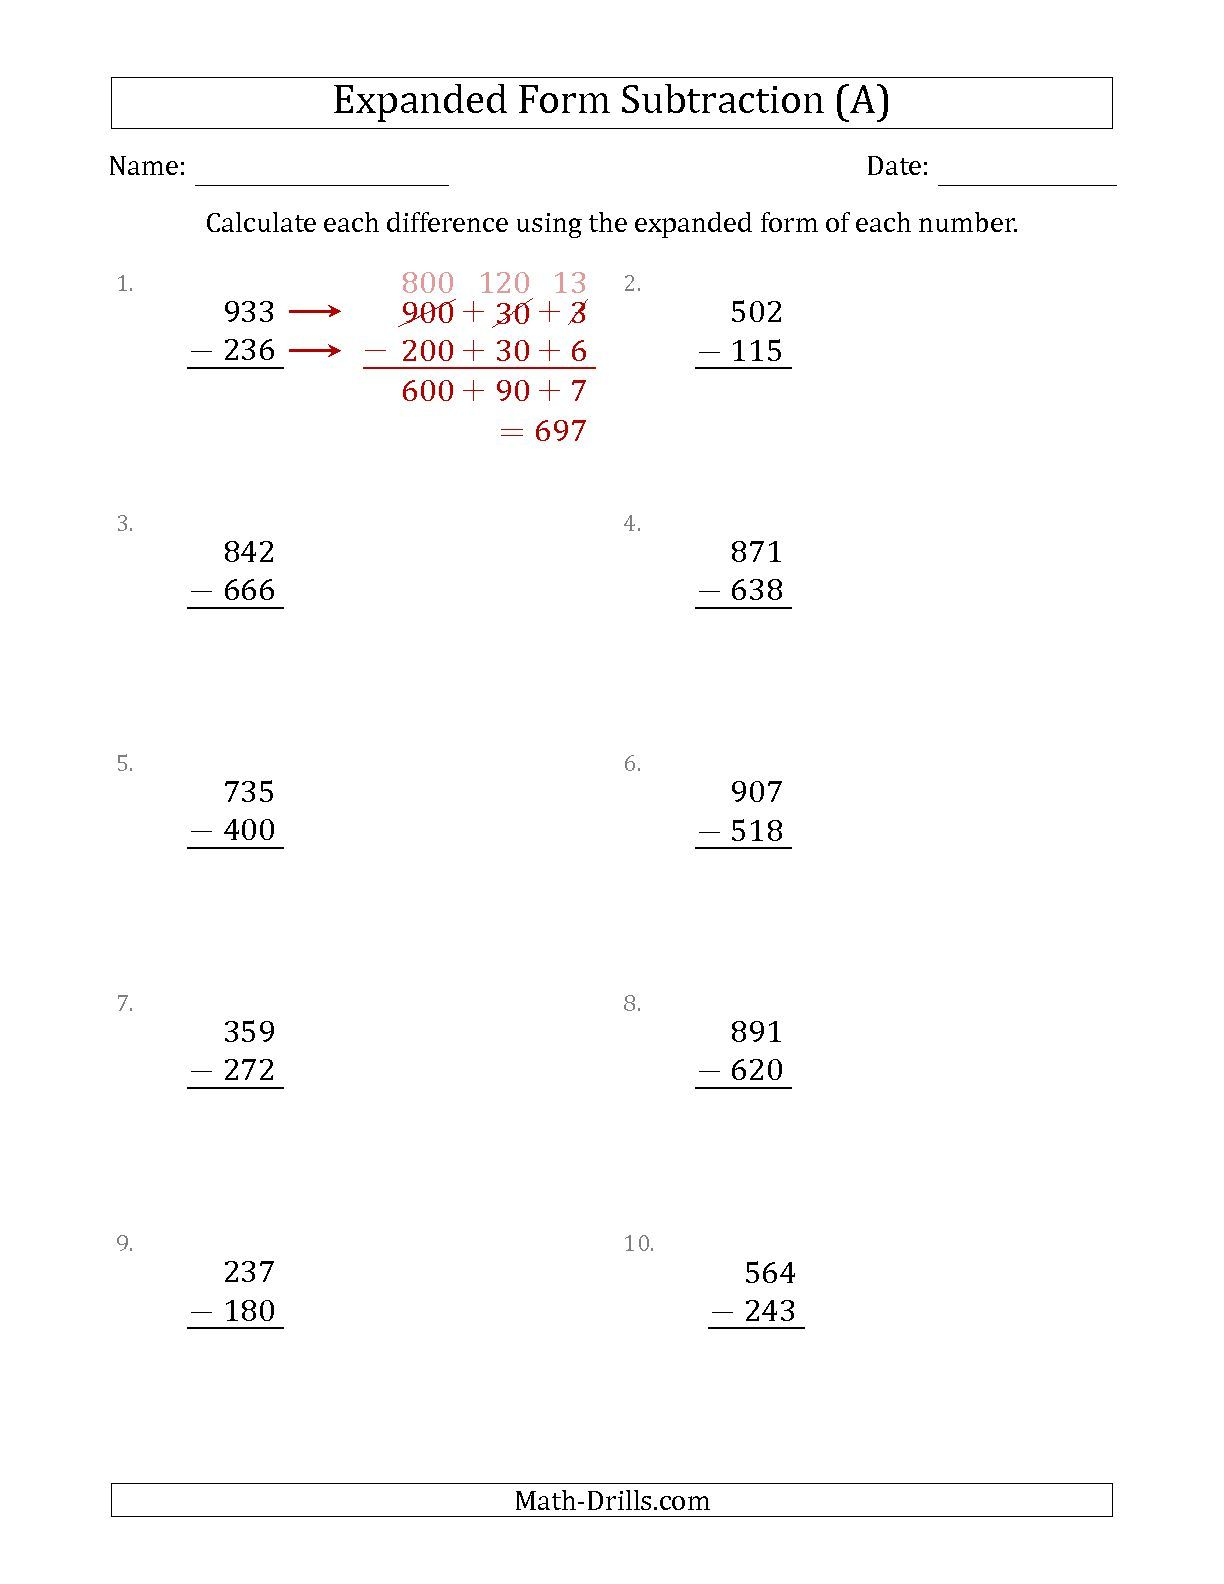 The 3-Digit Expanded Form Subtraction (A) math worksheet from the ...